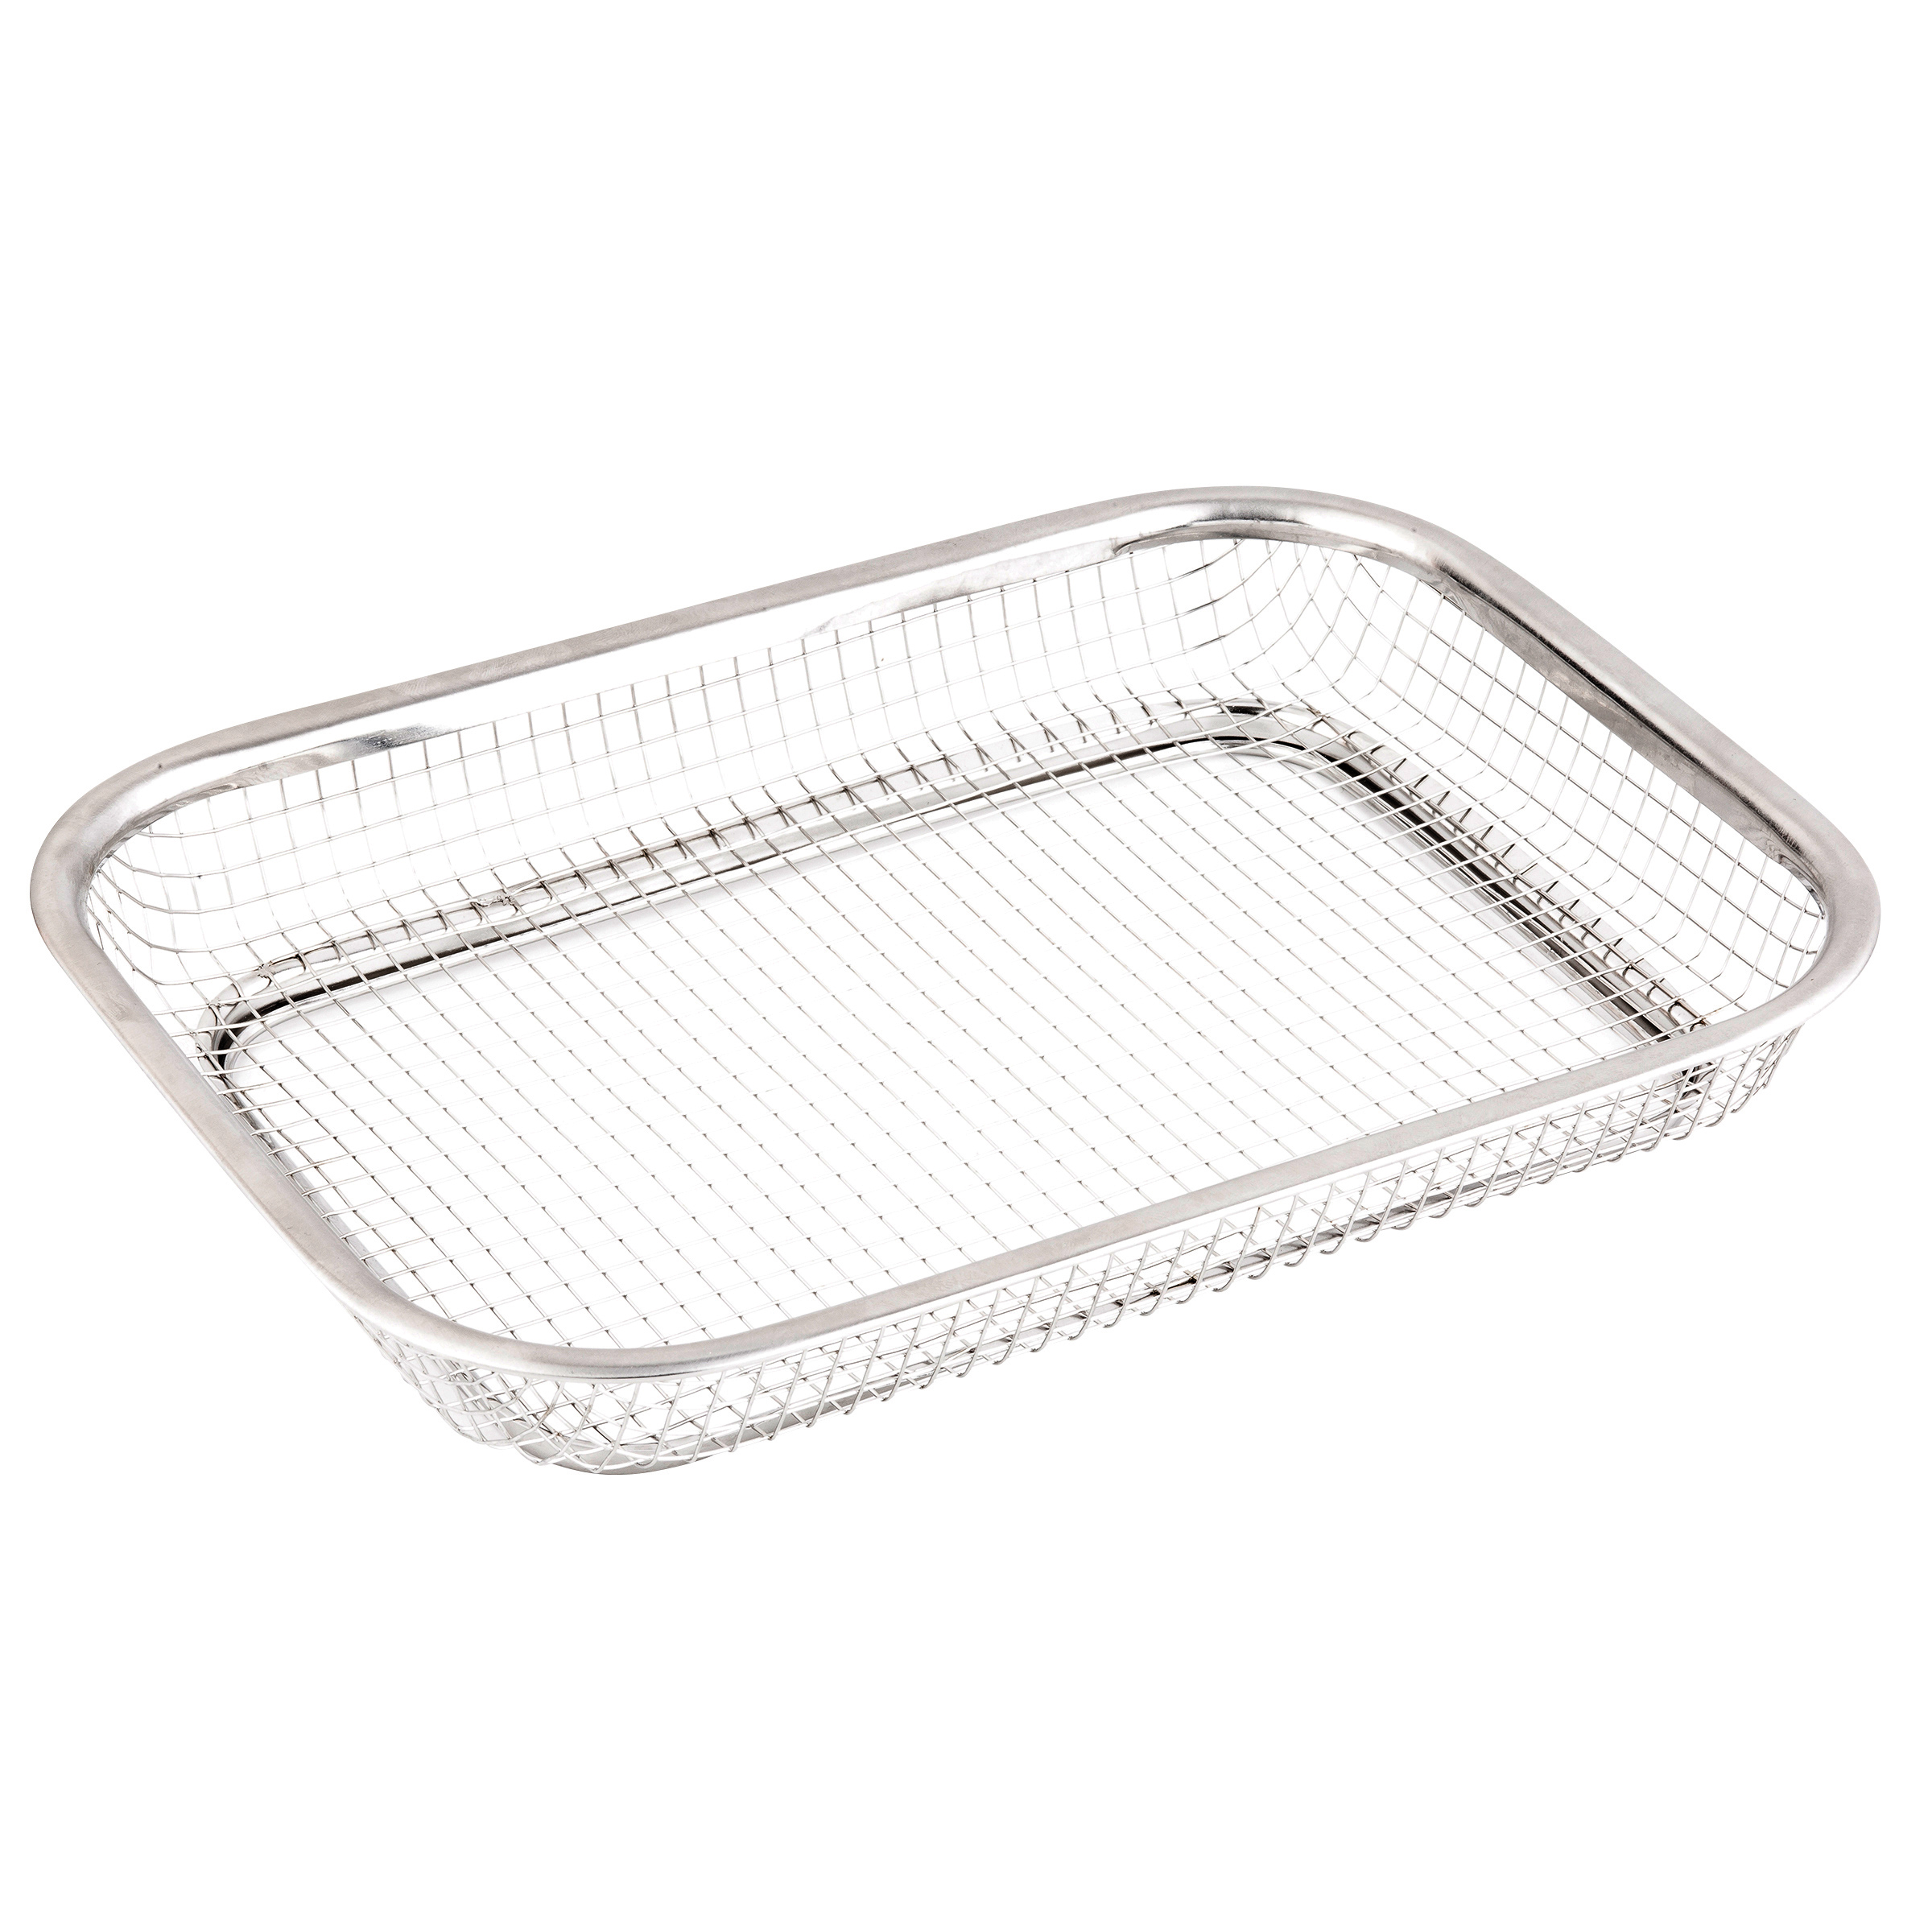 TableCraft Products 123475 basket, tabletop, metal